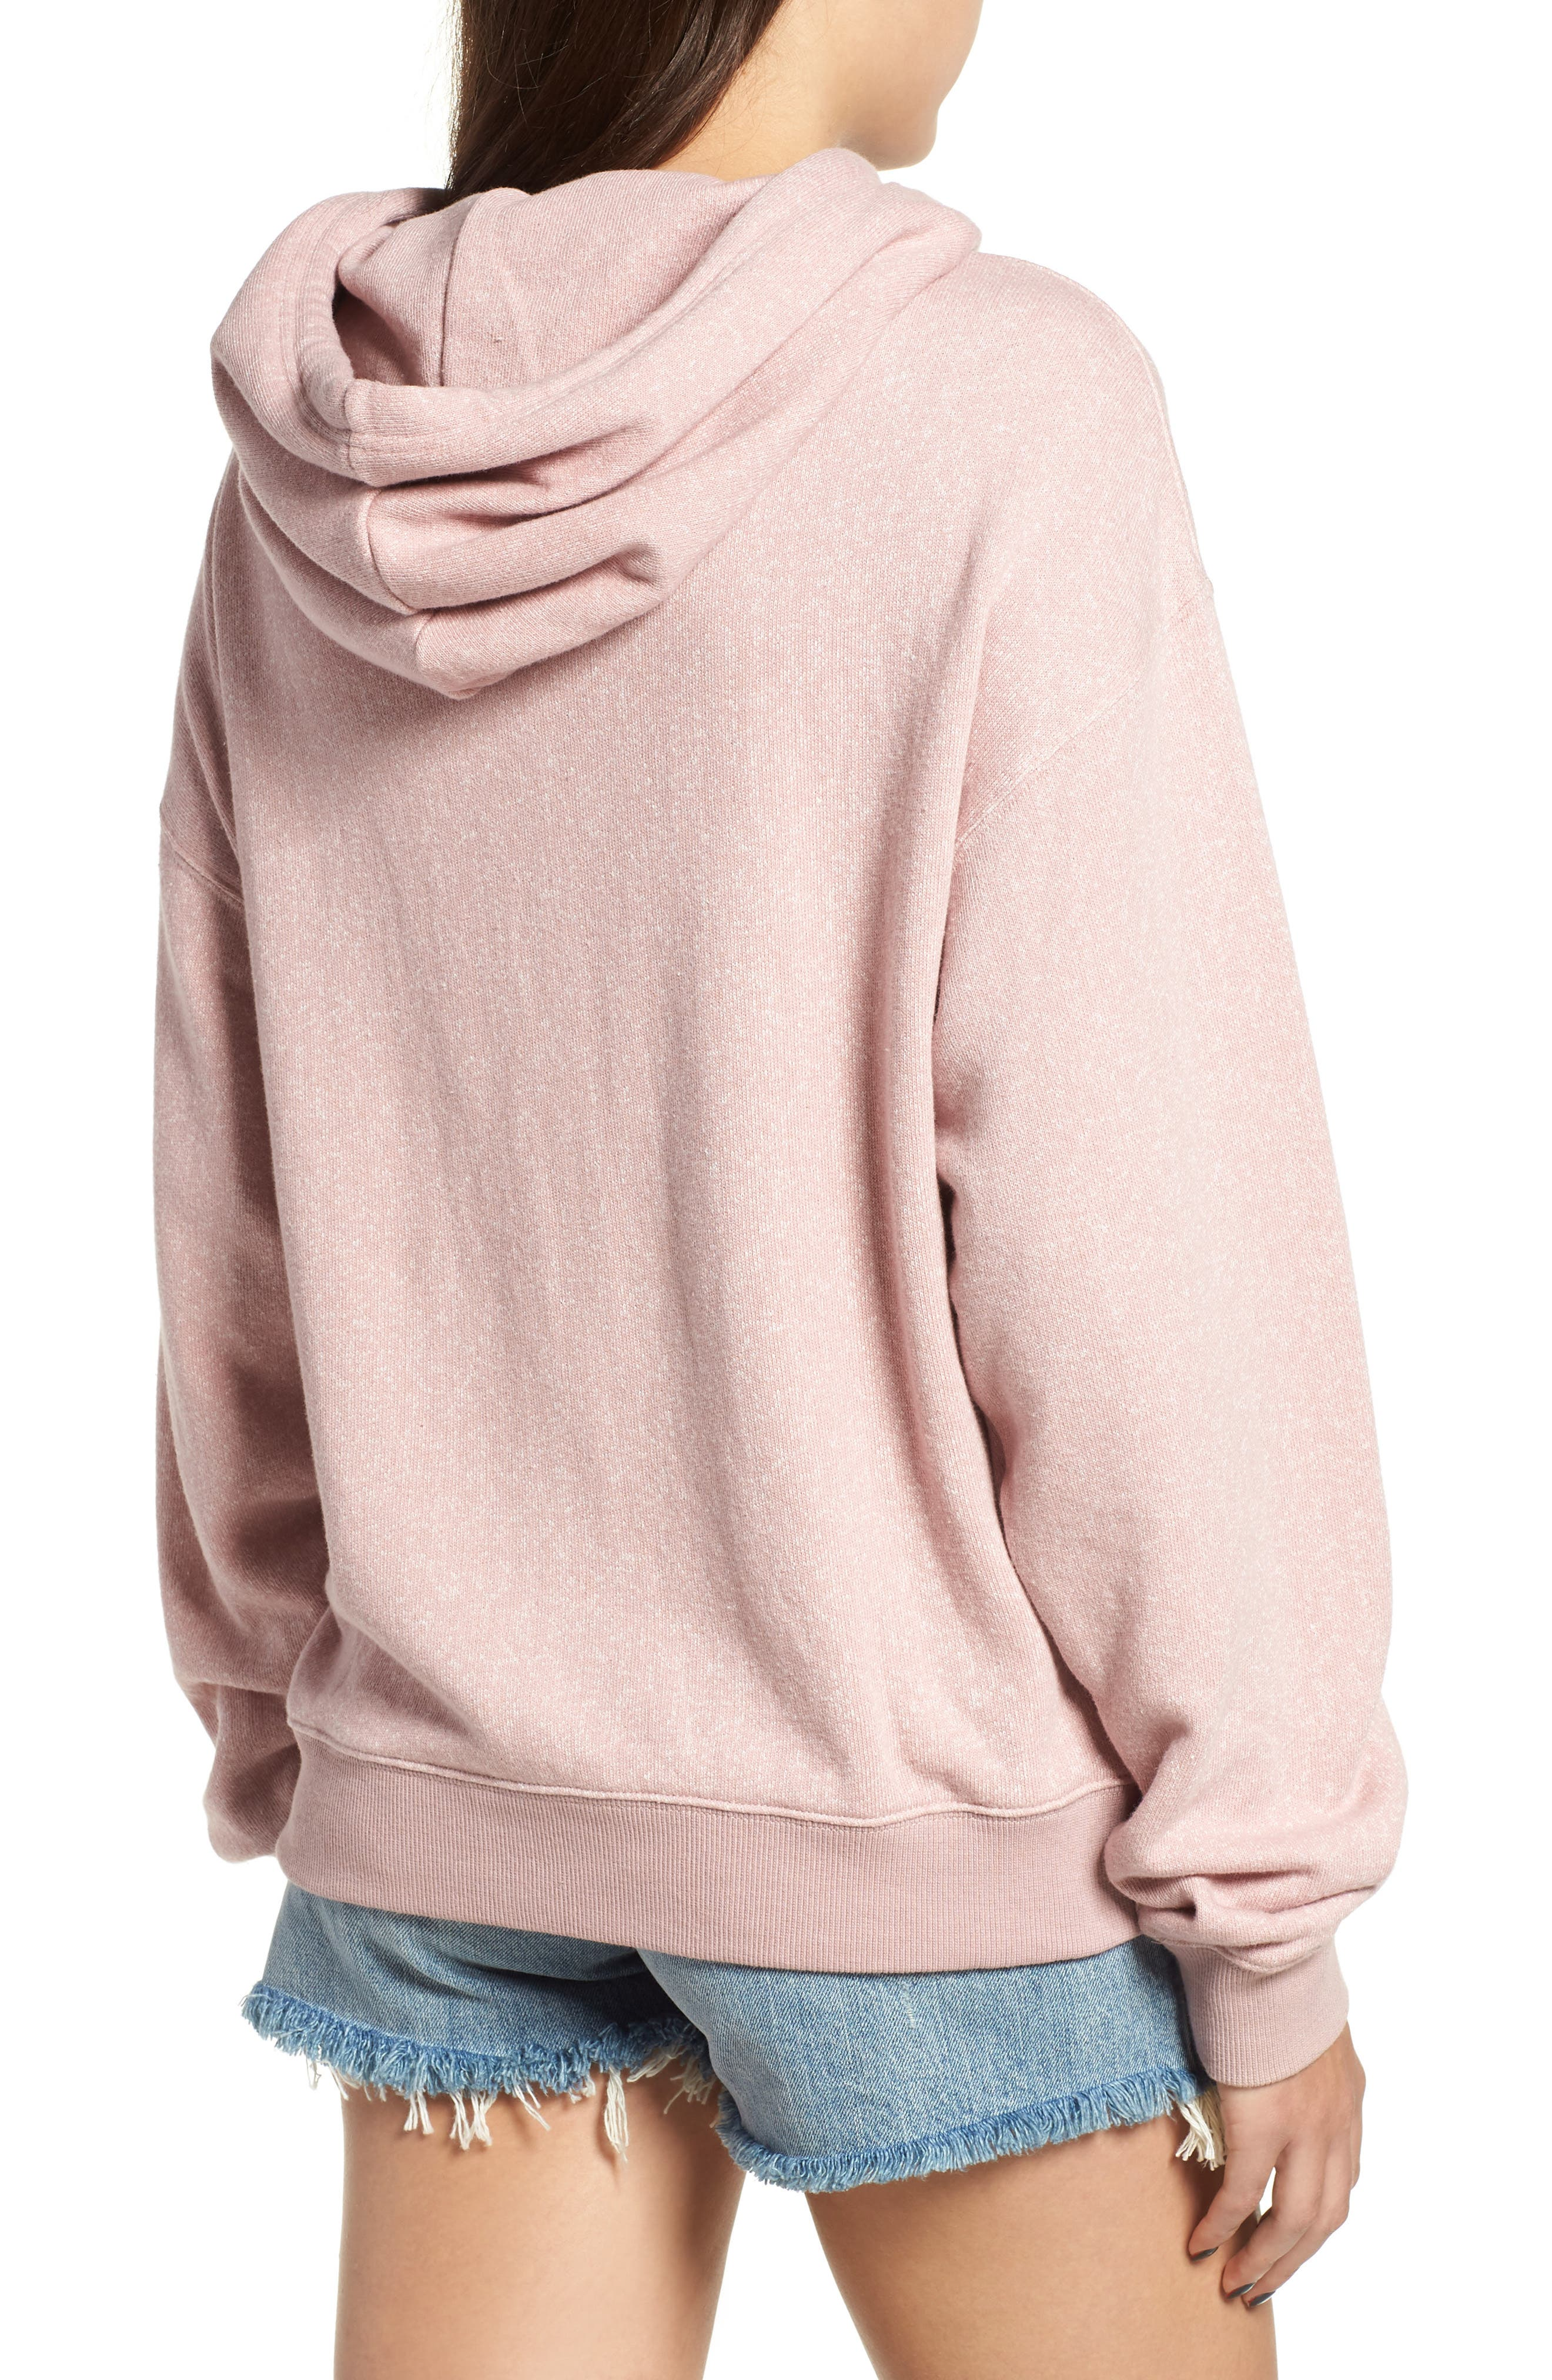 Shelbee Hoodie,                             Alternate thumbnail 2, color,                             DEAUVILLE MAUVE